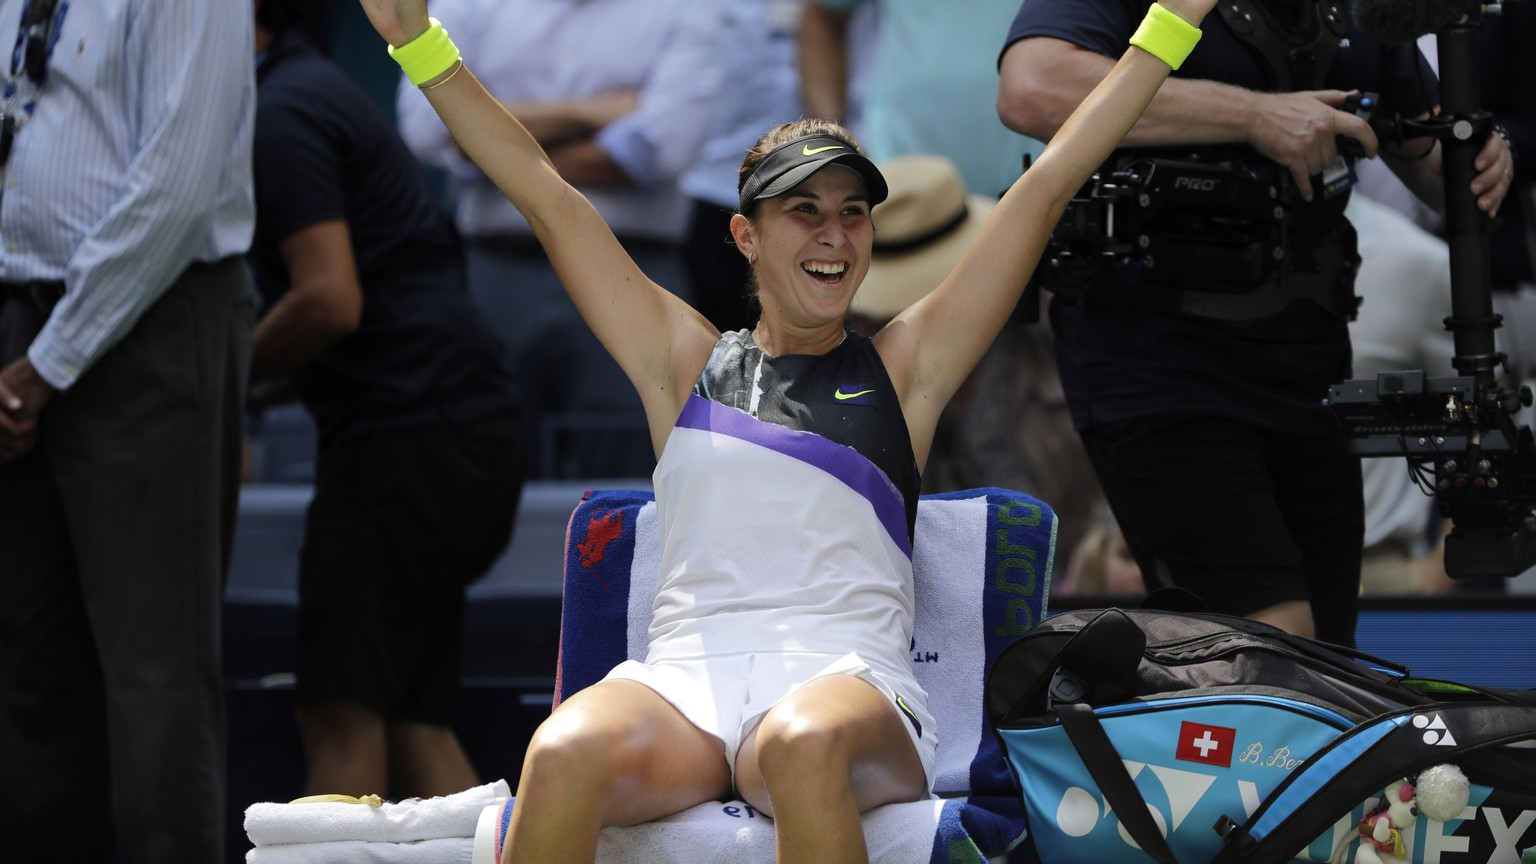 Belinda Bencic, of Switzerland, celebrates after defeating Donna Vekic, of Croatia, during the quarterfinals of the U.S. Open tennis championships Wednesday, Sept. 4, 2019, in New York. (AP Photo/Frank Franklin II) Belinda Bencic